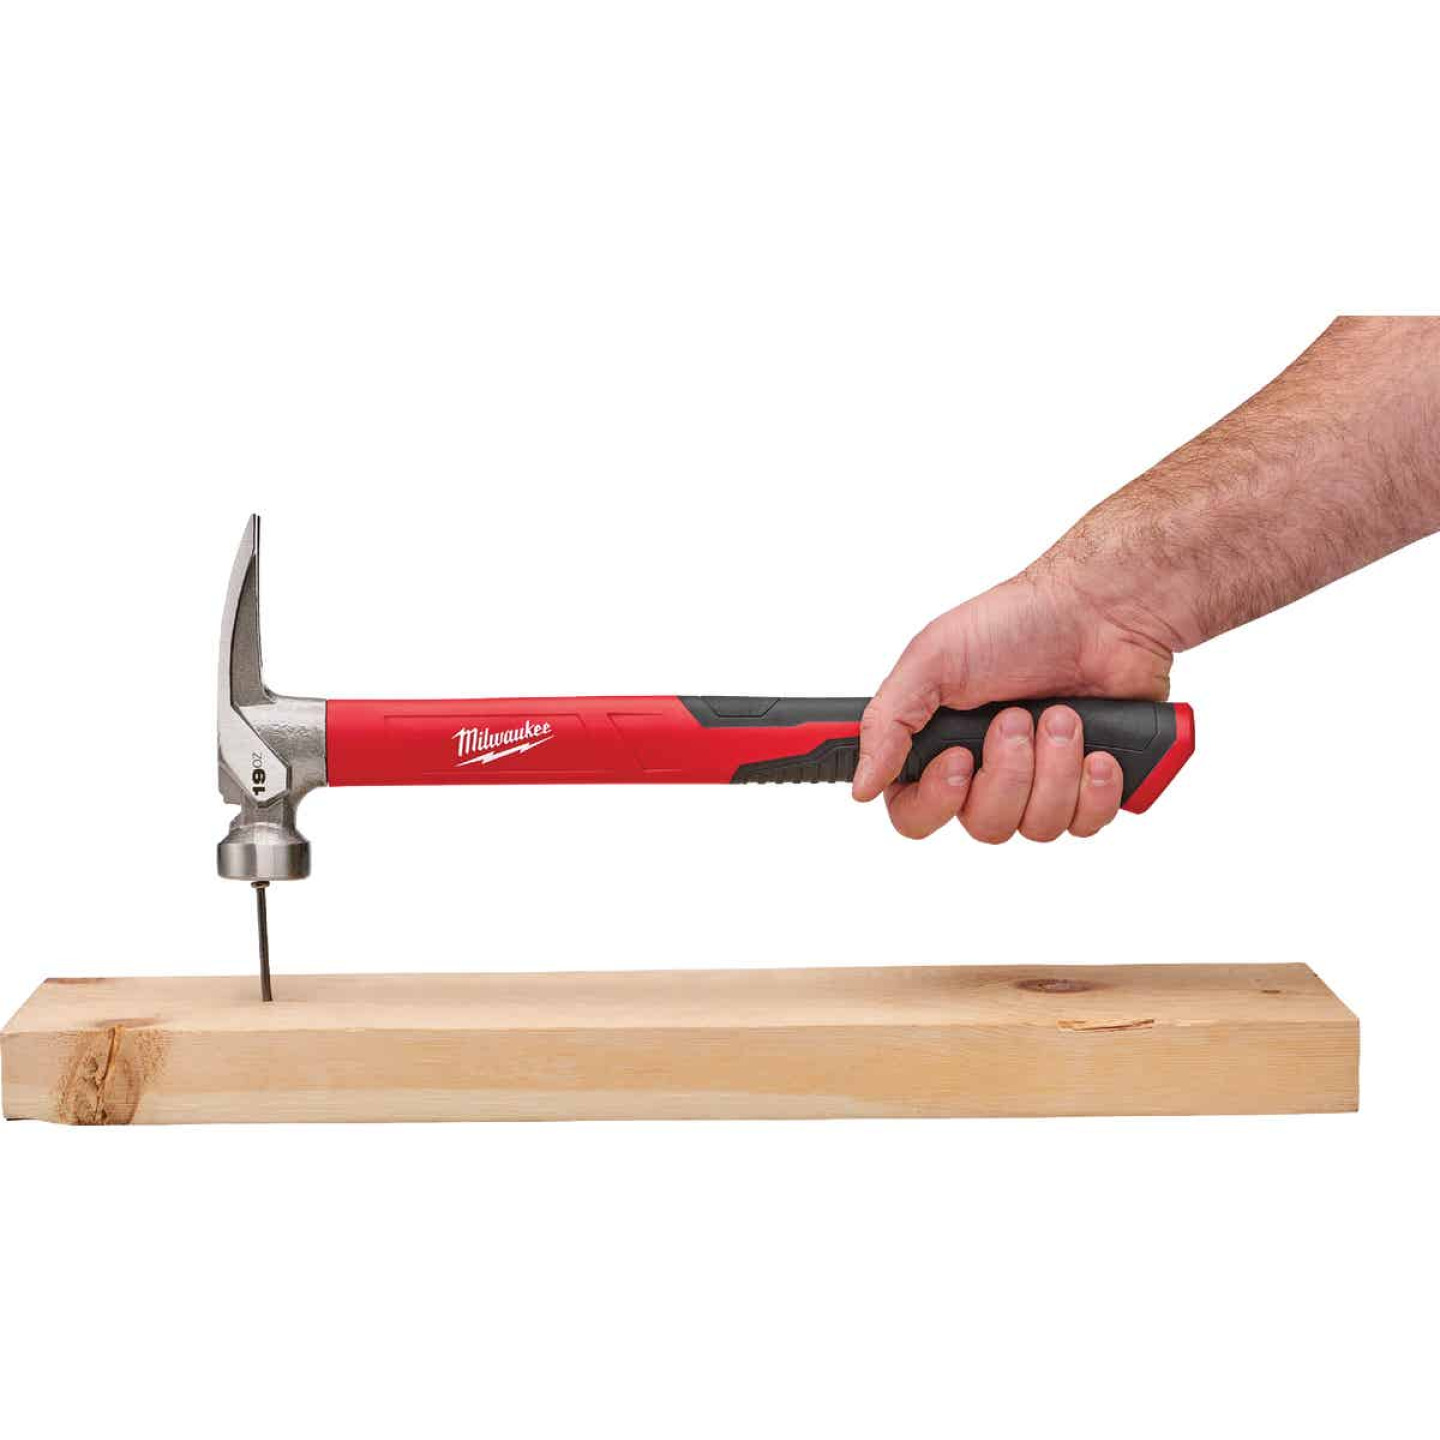 Milwaukee 19 Oz. Smooth-Face Framing Hammer with Poly/Fiberglass Handle Image 2